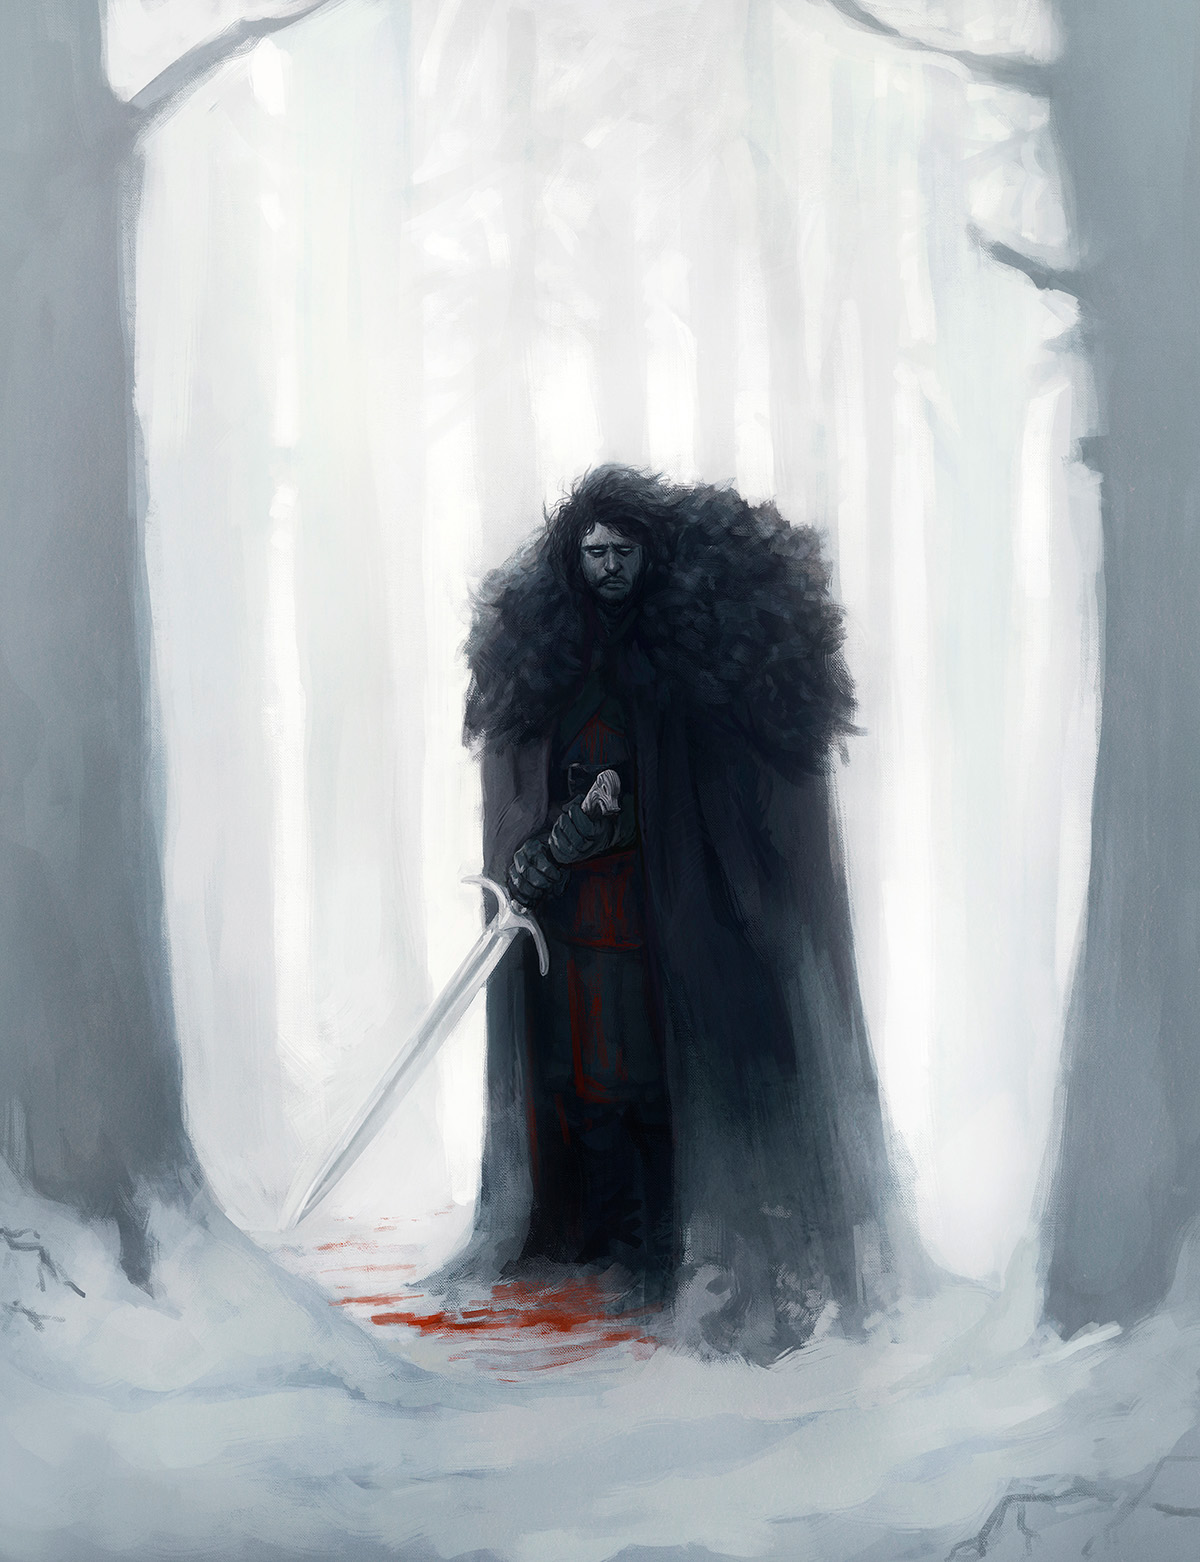 Game of Thrones hbo digital painting George R.R. Martin fantasy medieval warrior undead zombie Terror horror night Fighter Magic   white walker